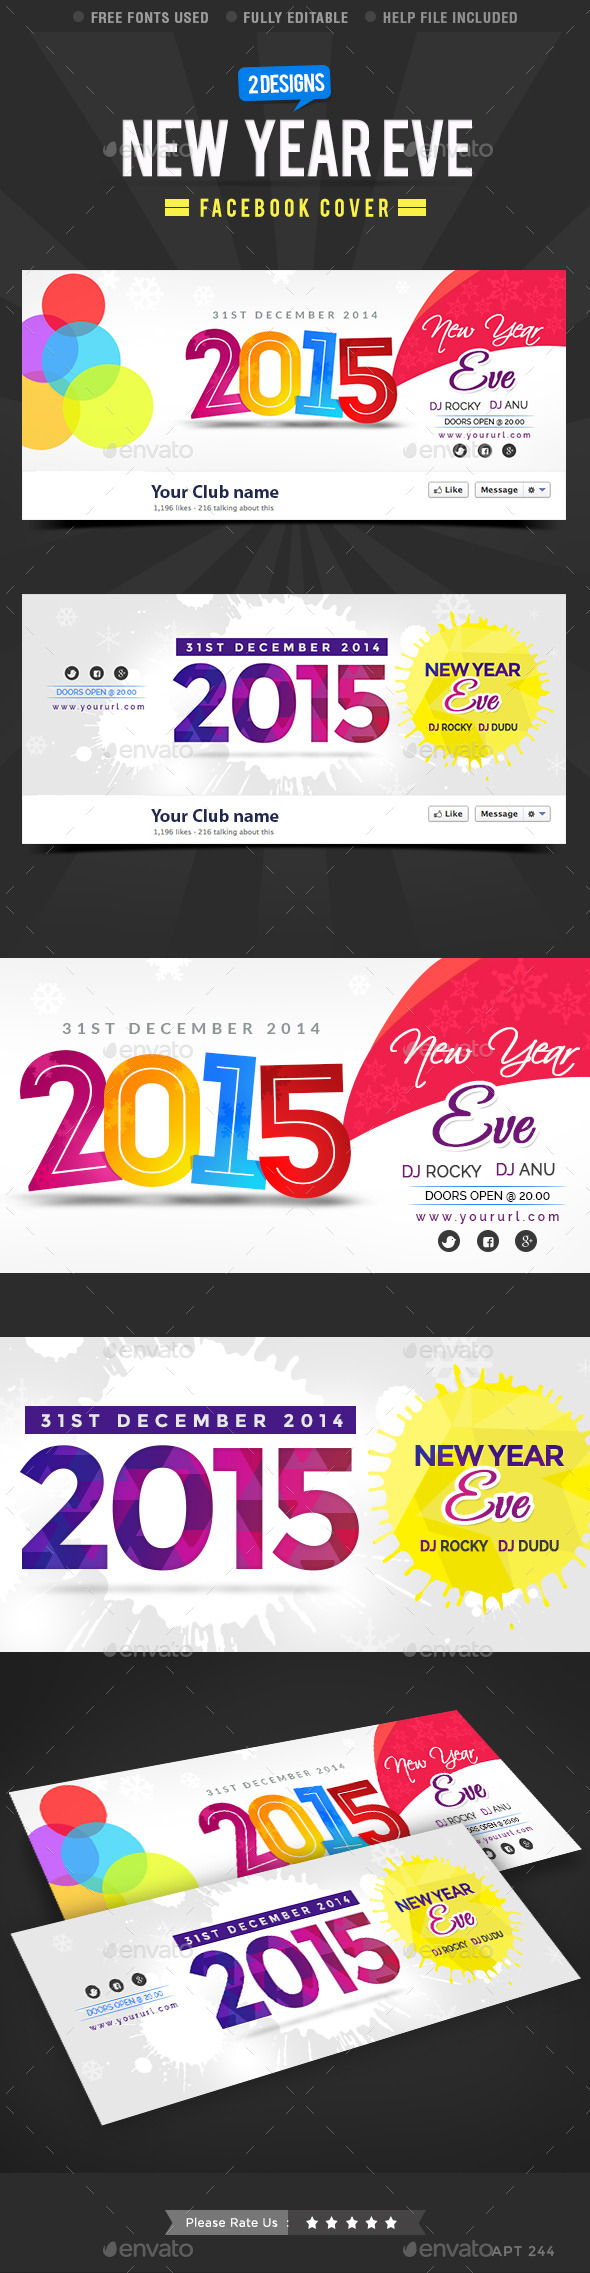 GraphicRiver New Year Facebook Cover 9900473